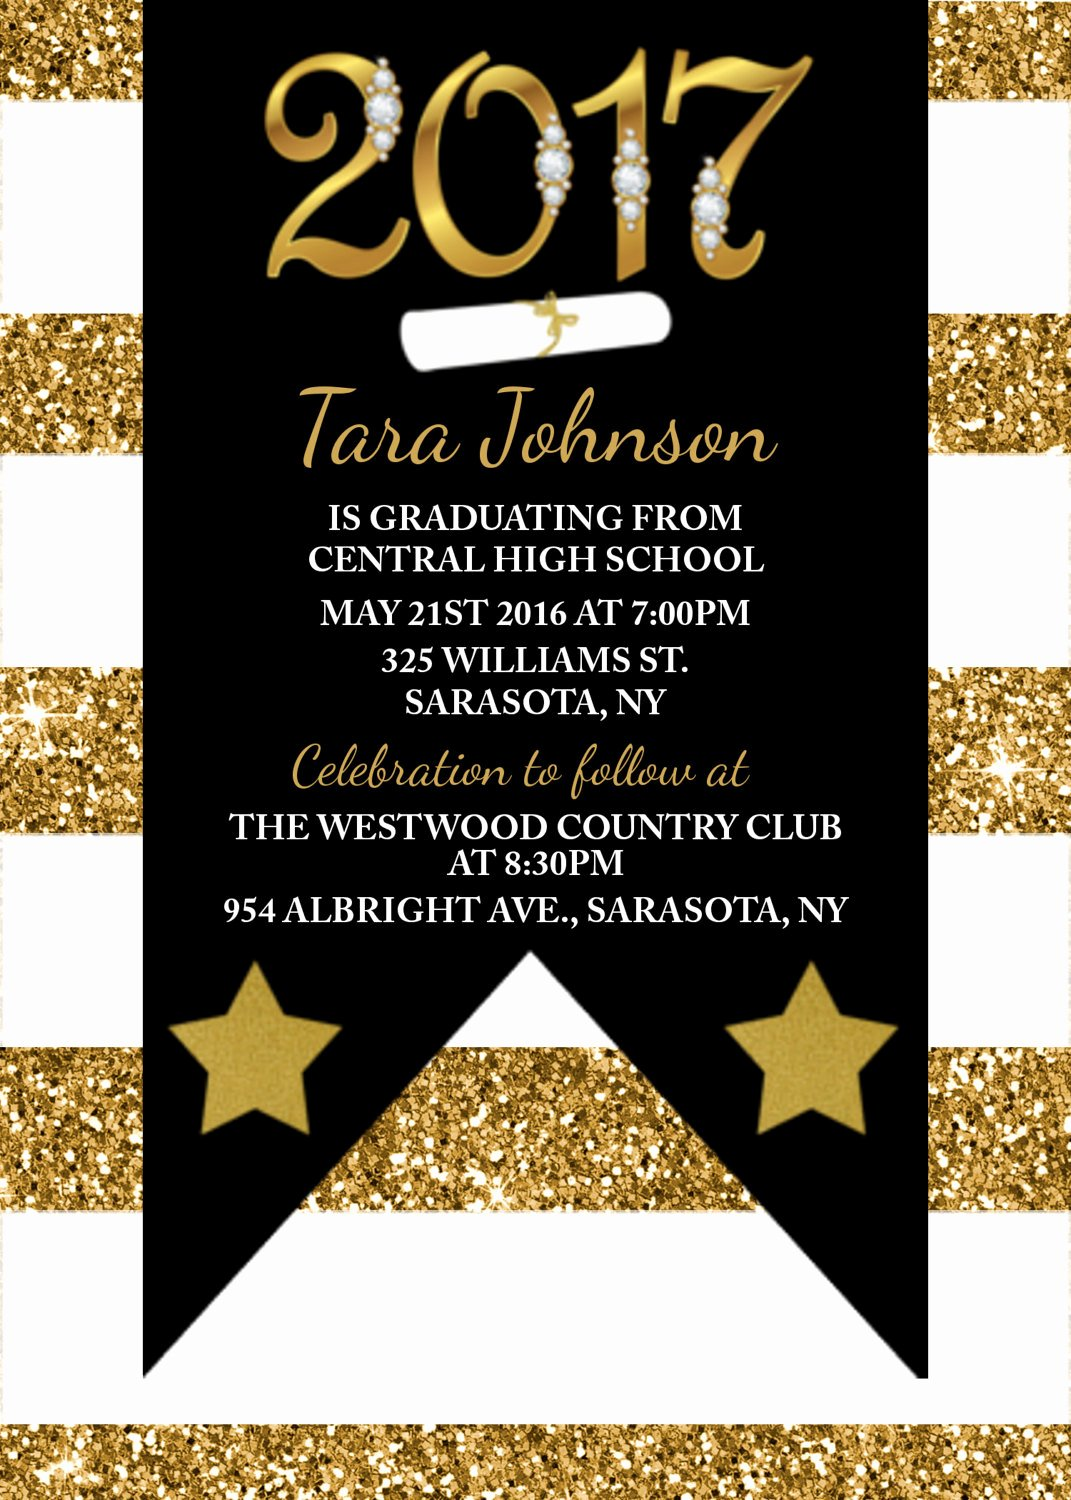 Black and Gold Graduation Invitations Yourweek D5b160eca25e